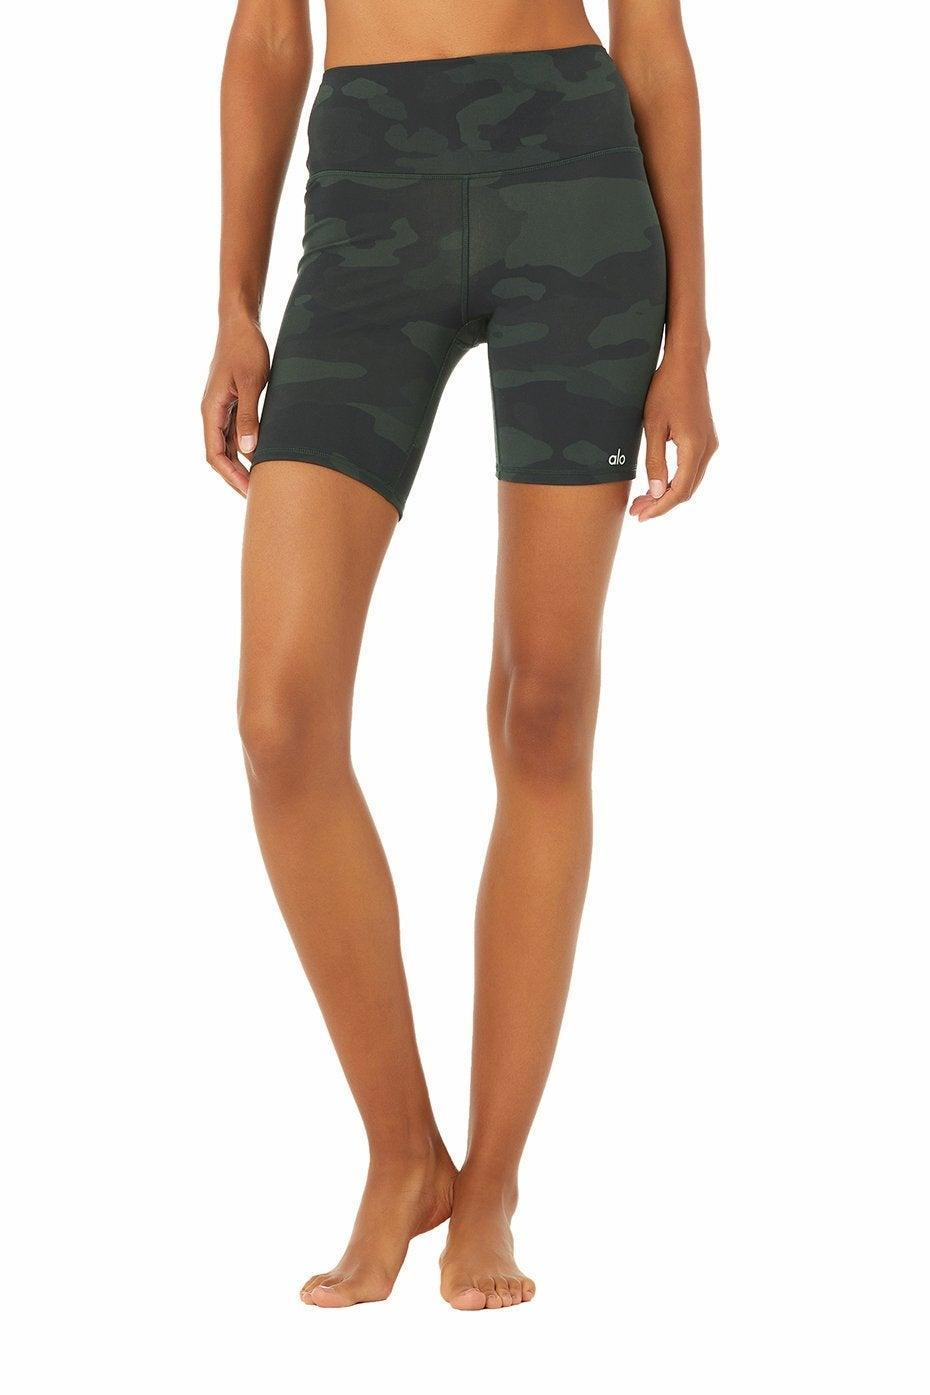 """<h2>Alo Yoga High-Waist Vapor Shorts</h2>The ultralight, smooth performance fabric on this pair of biker shorts will make any kind of exercise — from a hard run to a chill bike ride — a breeze. <br> <br> <strong>Alo Yoga</strong> High-Waist Vapor Short, $, available at <a href=""""https://go.skimresources.com/?id=30283X879131&url=https%3A%2F%2Fwww.aloyoga.com%2Fproducts%2Fw6162r-high-waist-vapor-short-hunter-camouflage"""" rel=""""nofollow noopener"""" target=""""_blank"""" data-ylk=""""slk:Alo Yoga"""" class=""""link rapid-noclick-resp"""">Alo Yoga</a>"""